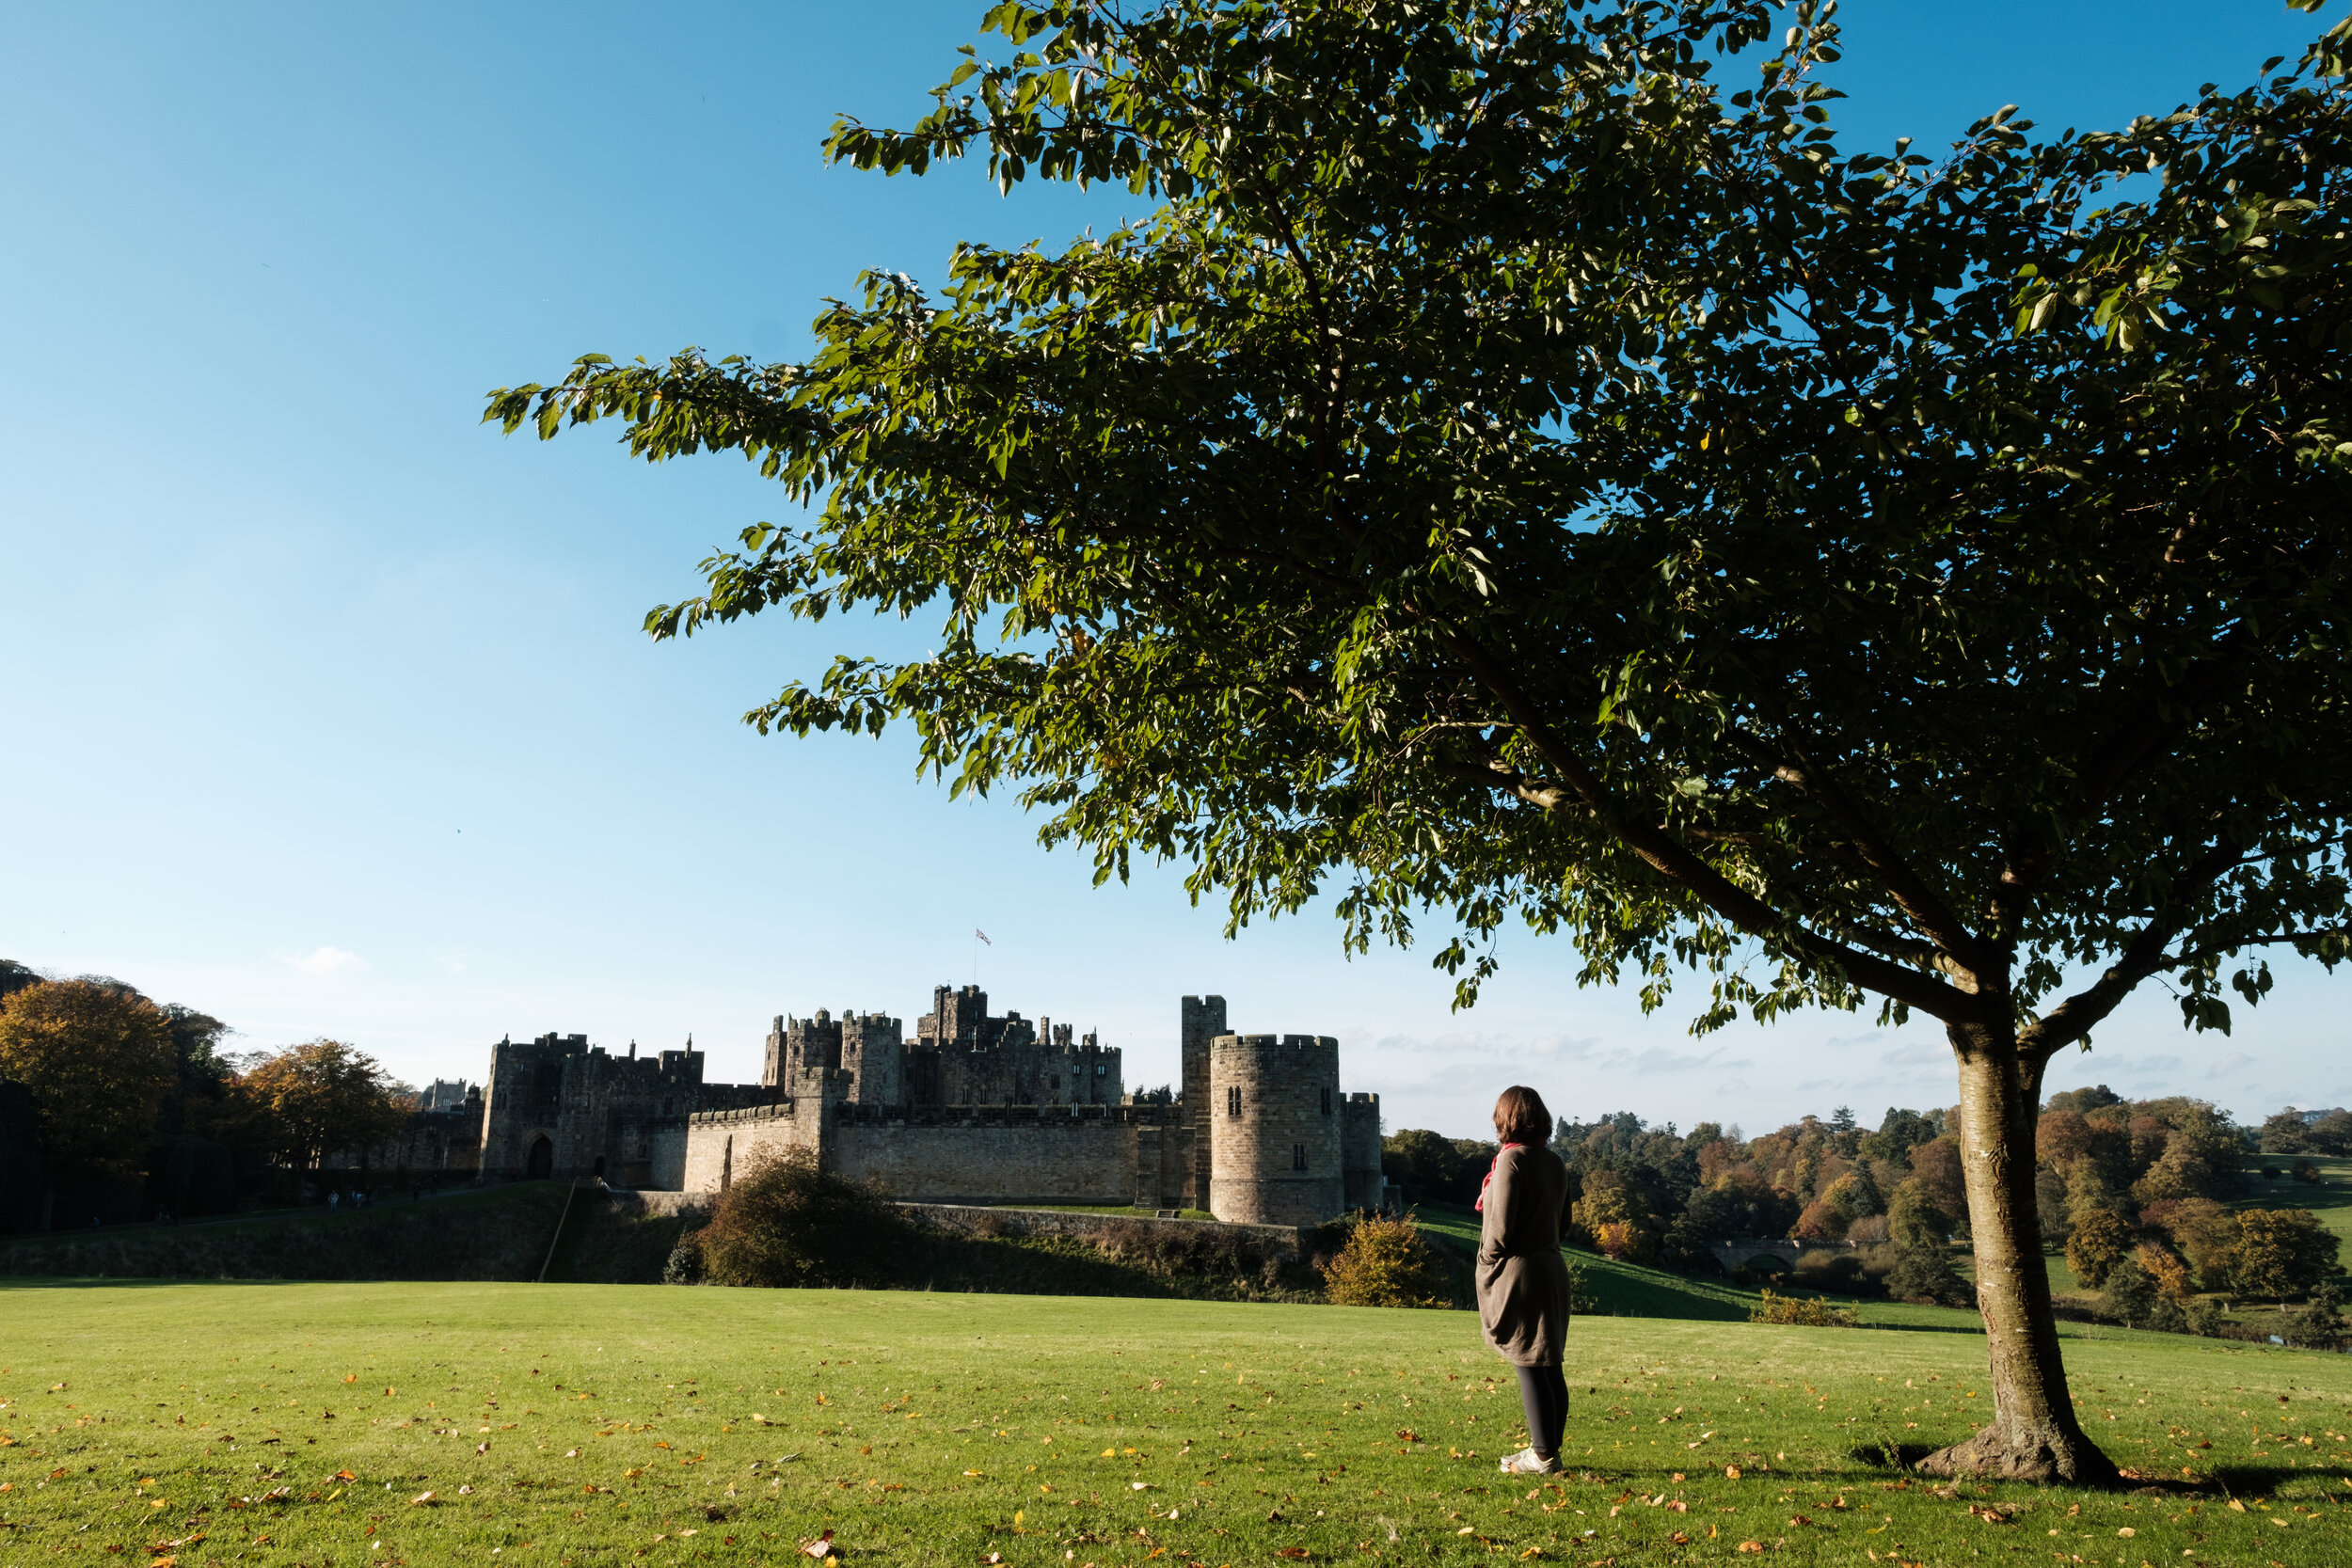 Our route took us right by Alnwick Castle in Northumberland. We walked around the caste and took in the atmosphere but decided nor to pay for admission. The school holiday meant hundreds of children were visiting, many of them with face paint and in Harry Potter inspired robes and gadgetry.